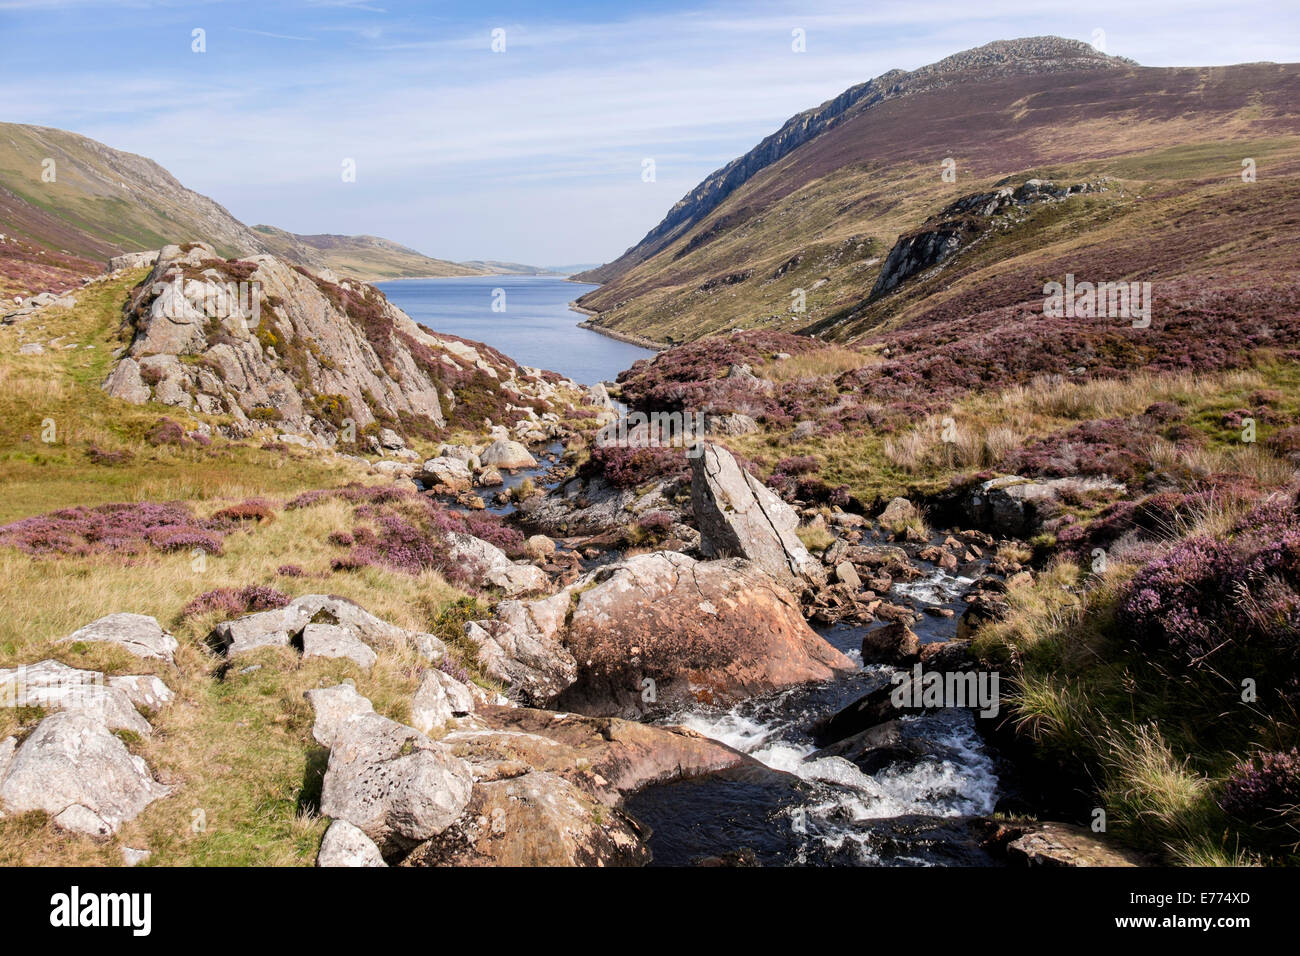 Looking north along a mountain stream supplying water to Llyn Cowlyd Reservoir lake below Creigiau Gleision in Snowdonia - Stock Image